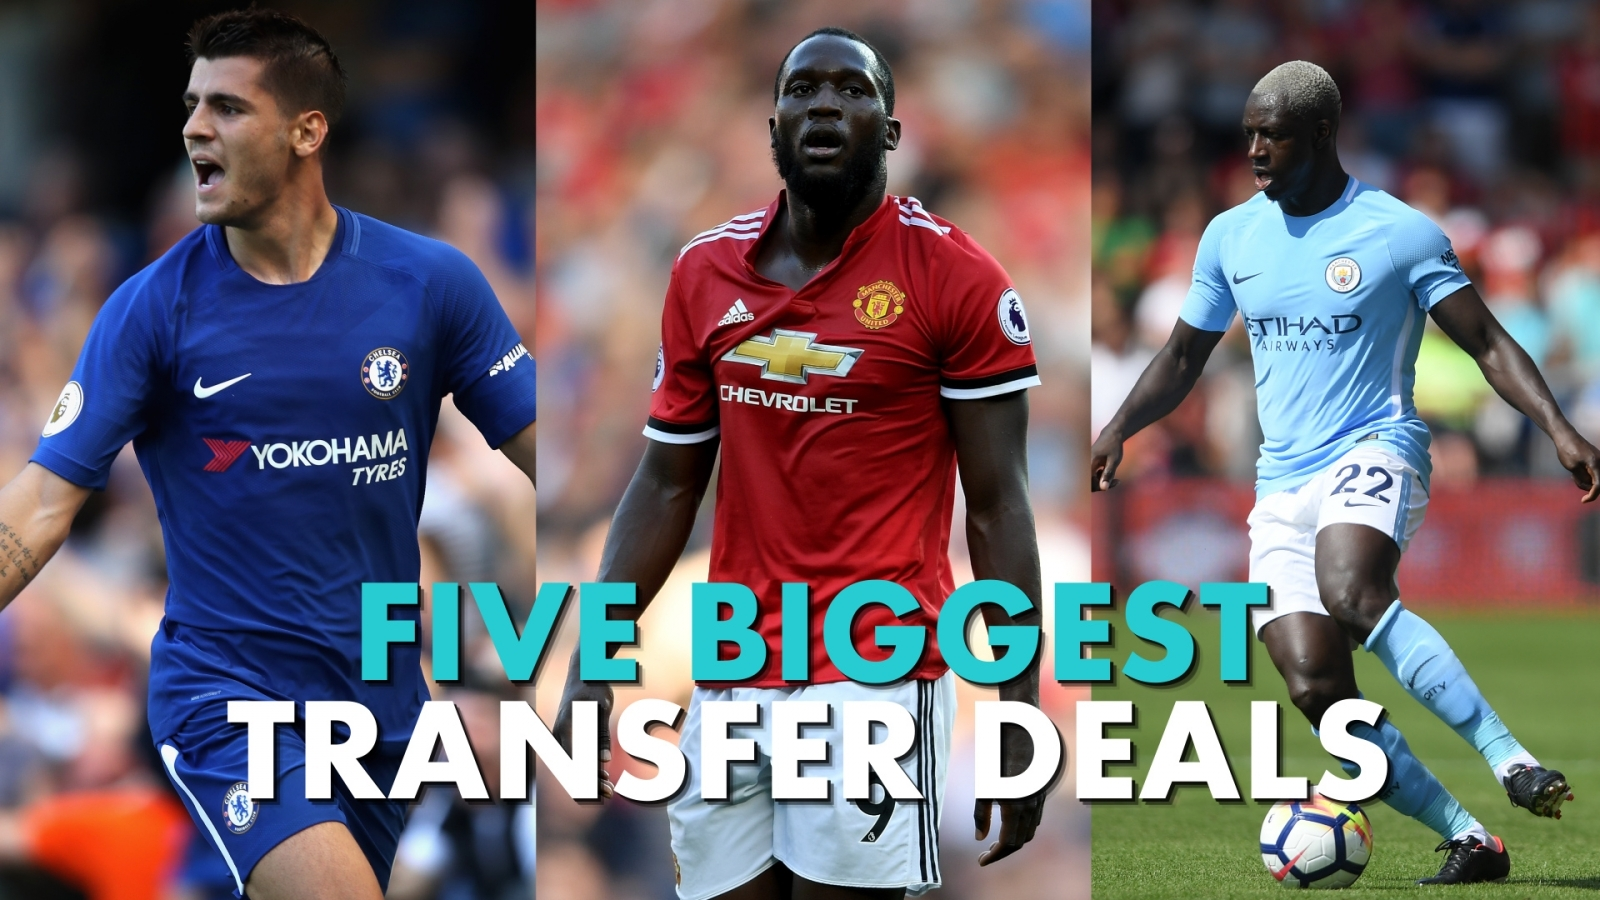 Five biggest Premier League transfer deals